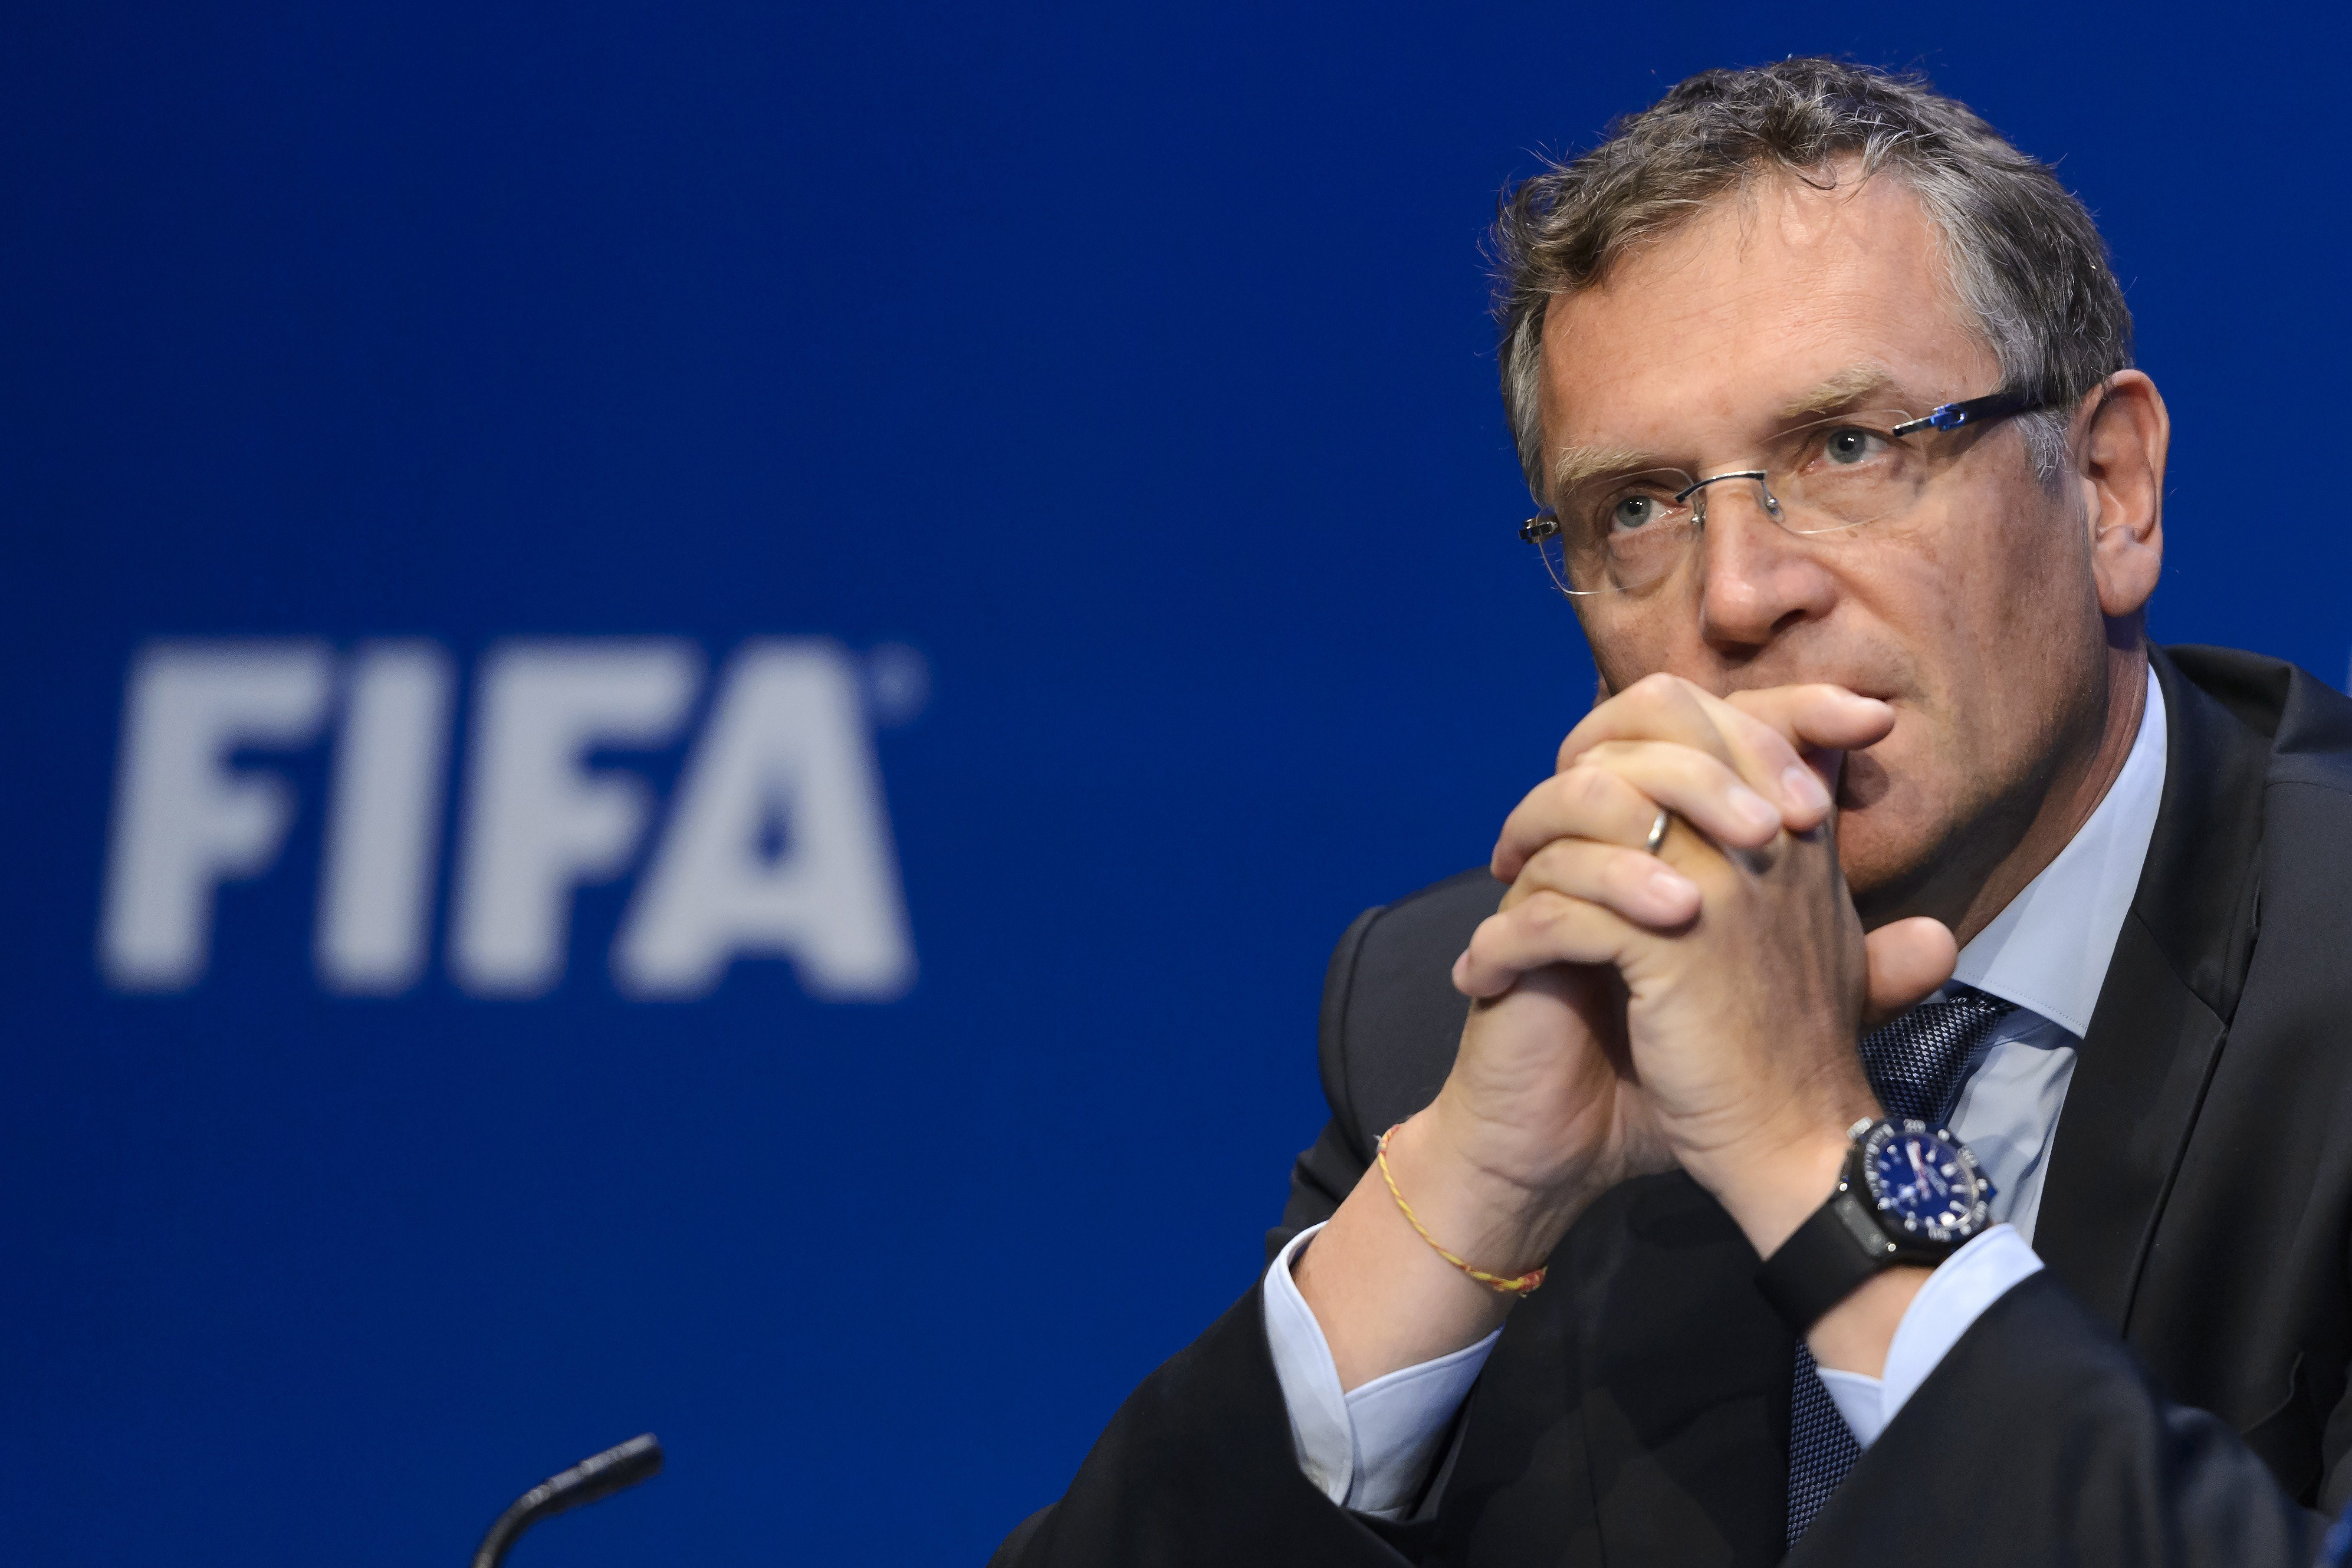 This May 30, 2015 photo shows FIFA general secretary Jerome Valcke during a press conference following the 65th FIFA Congress in Zurich.